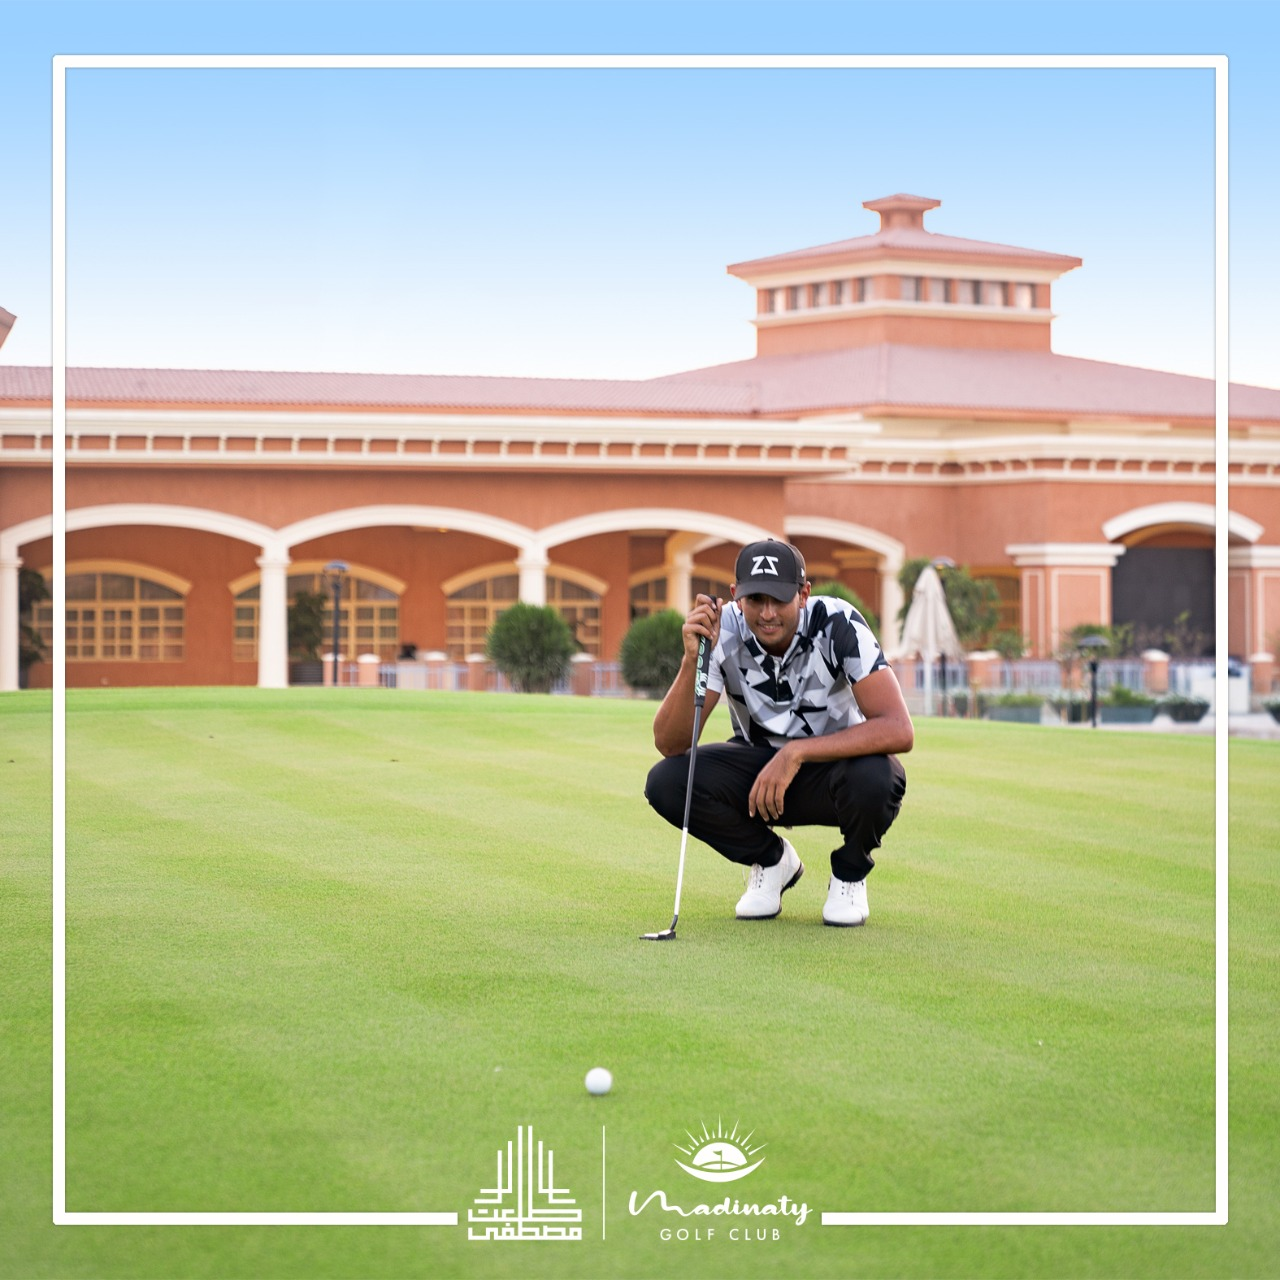 Issa Abou El-Ela, has been appointed as an ambassador of Madinaty Golf Club